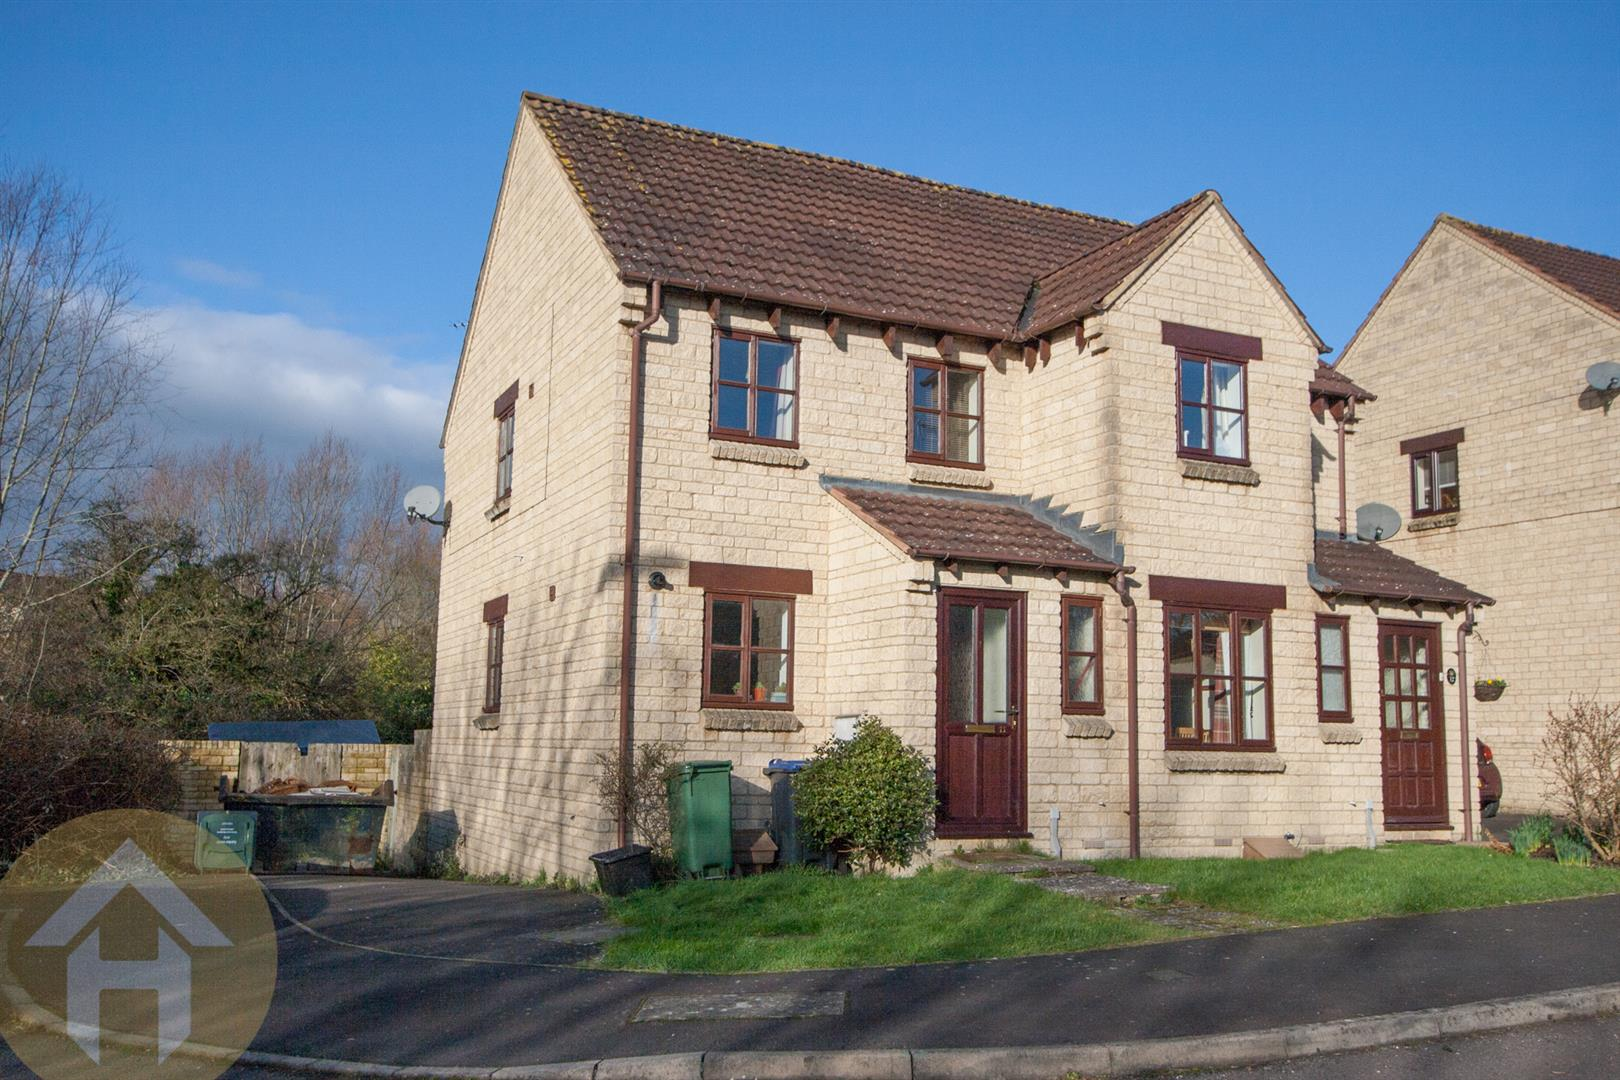 3 Bedrooms Semi Detached House for sale in Roebuck Close, Royal Wootton Bassett,